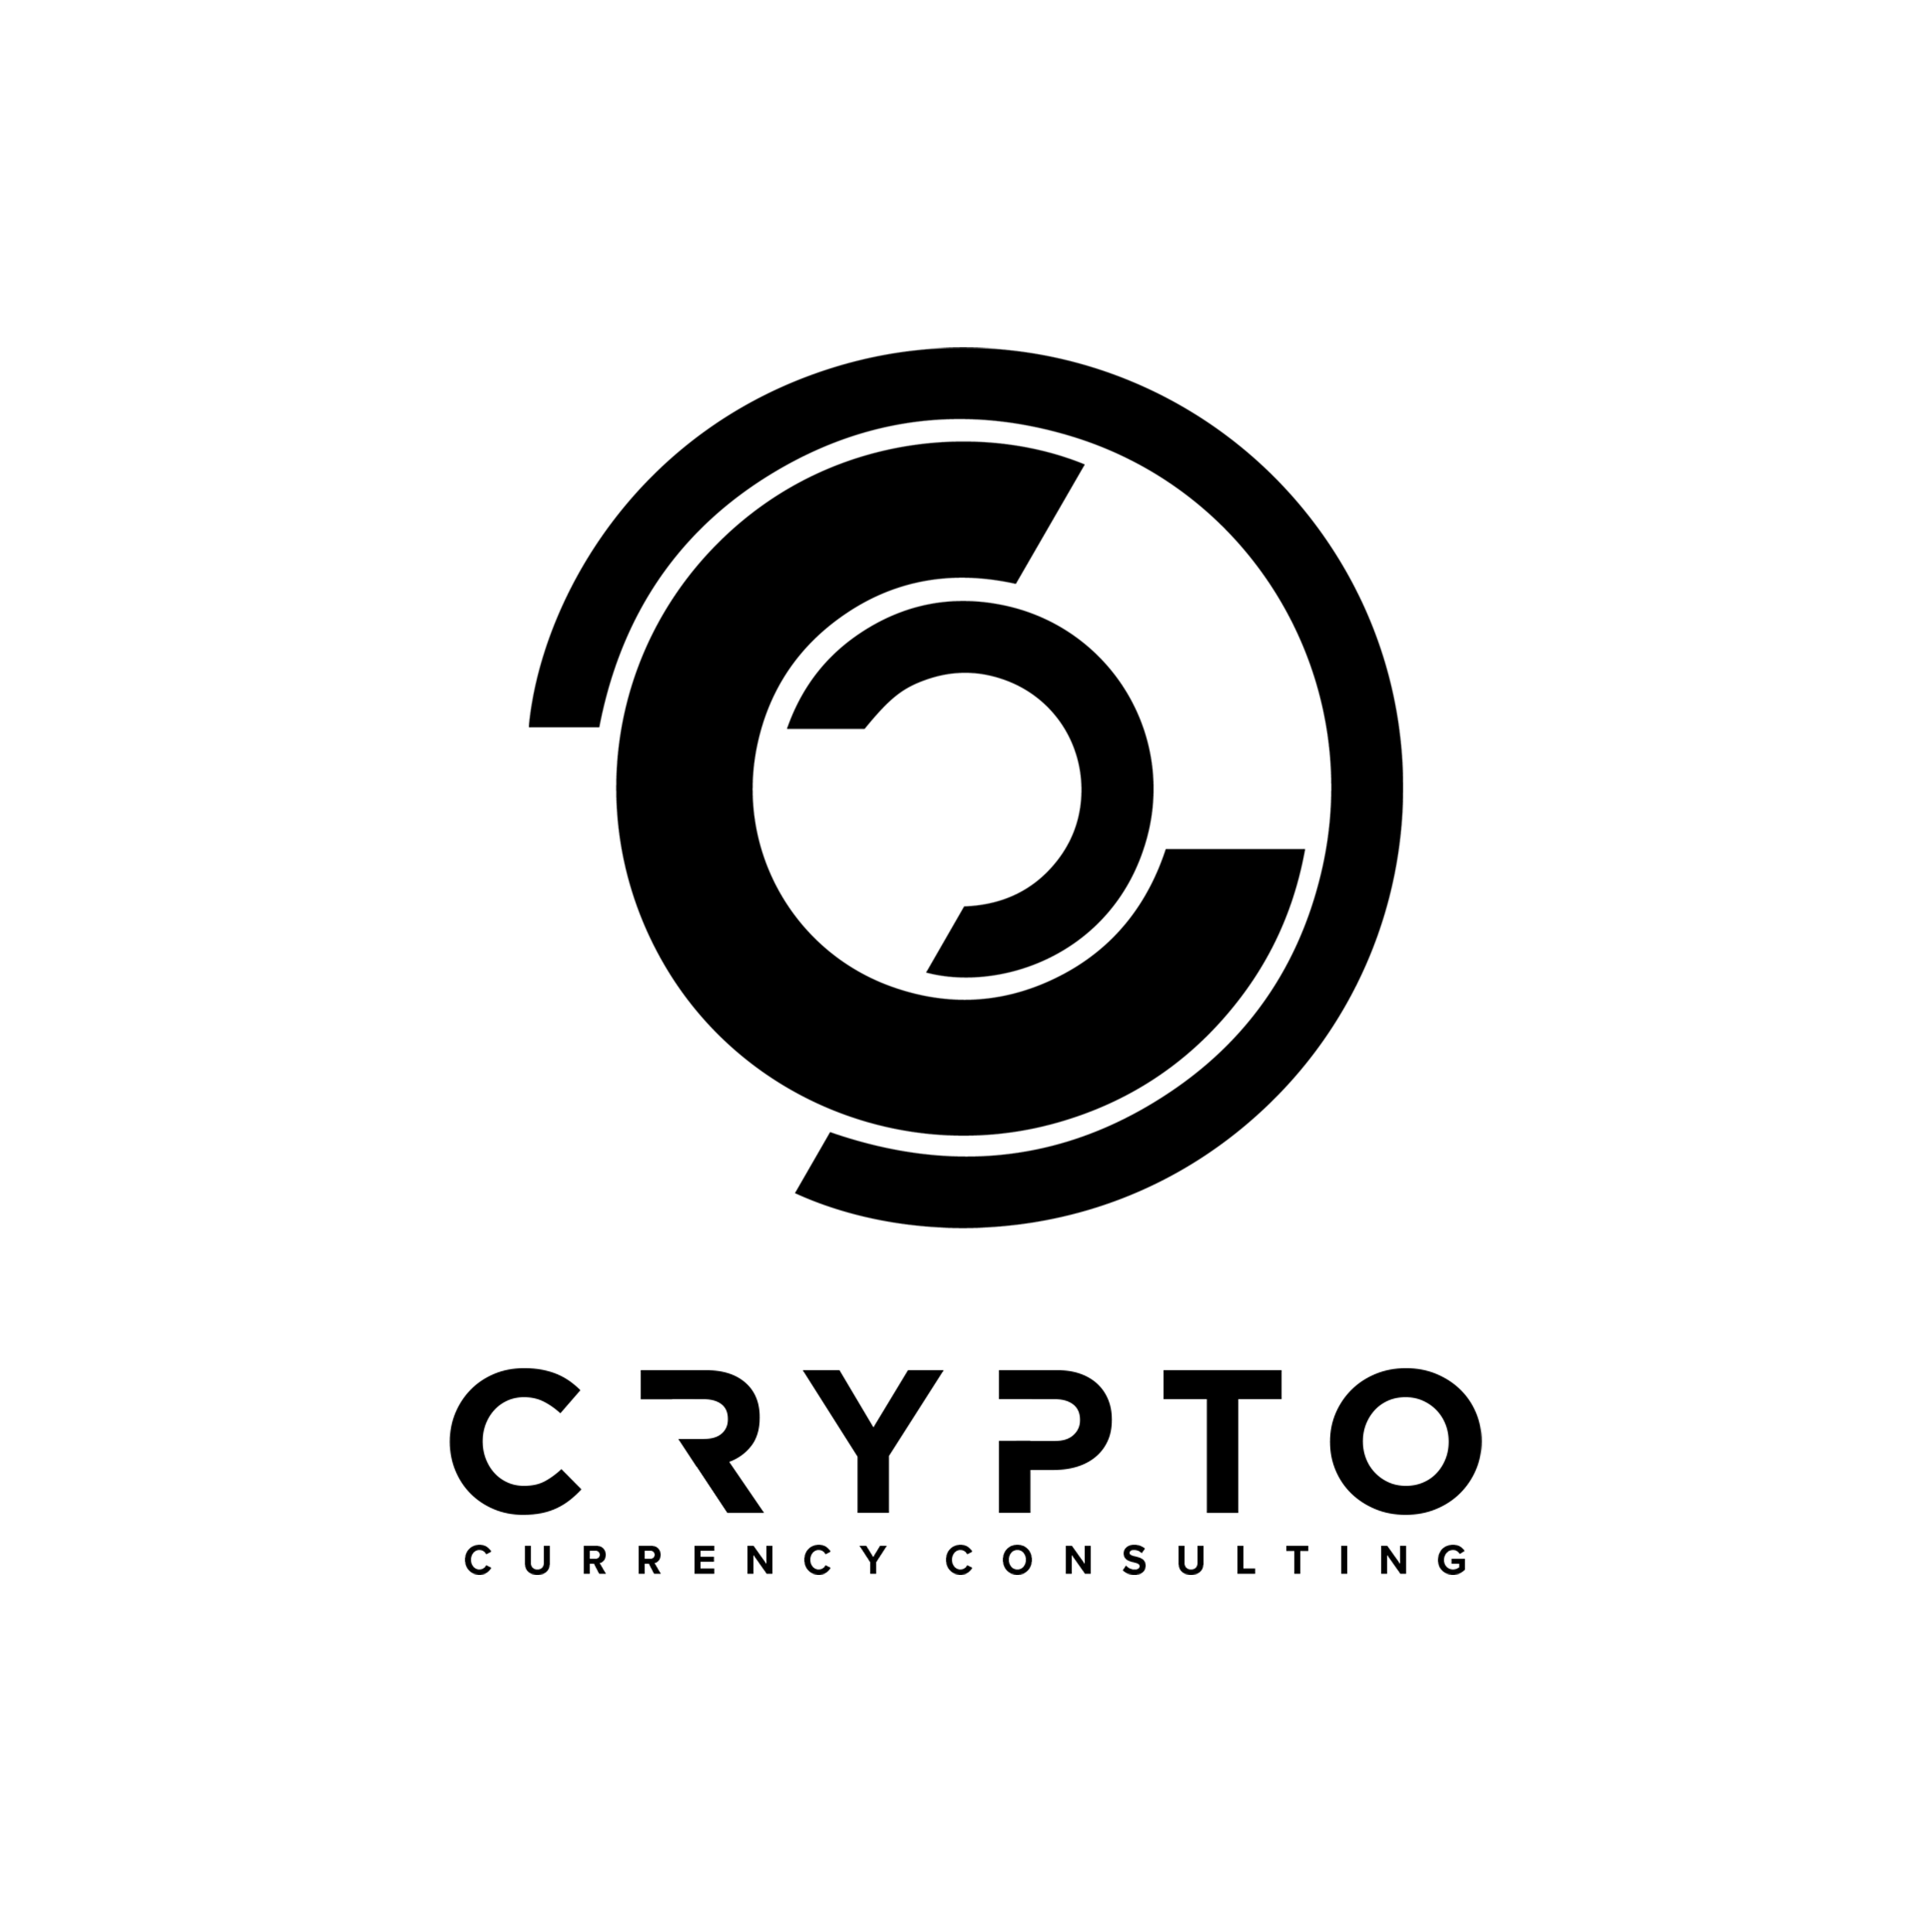 Cryptocurrency Consulting